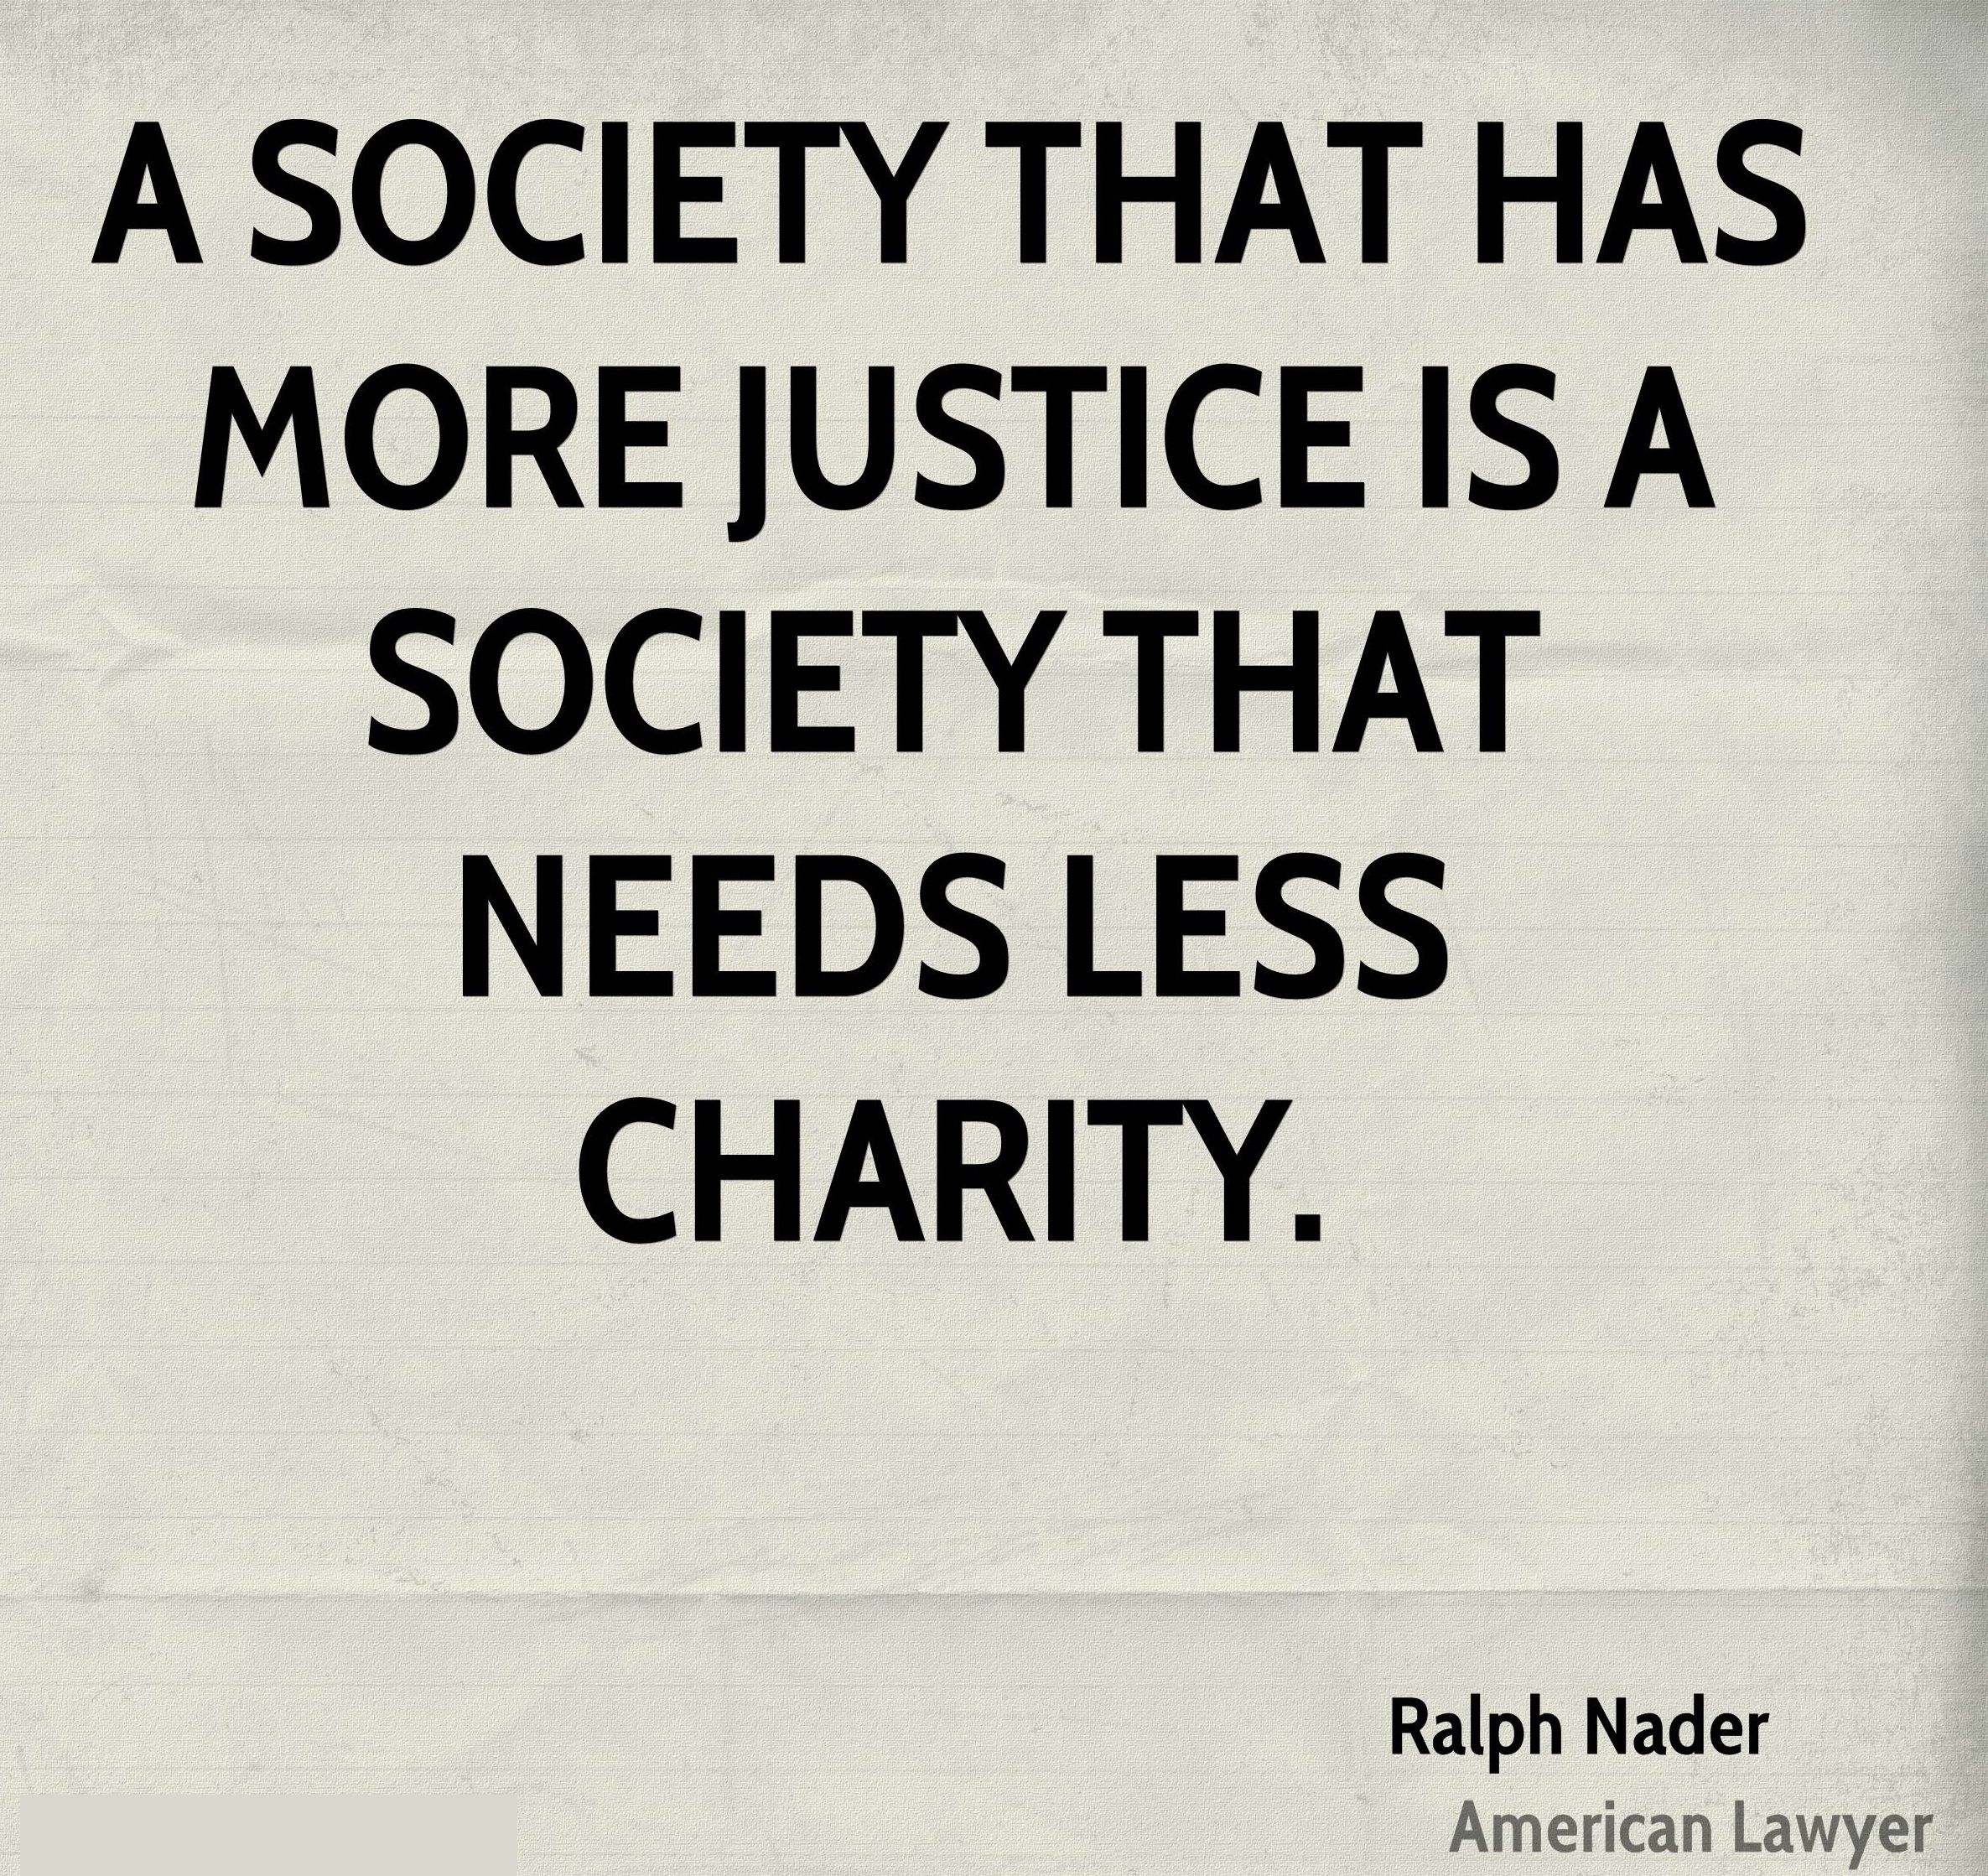 Do you agree? #justice #lawyer #attorney #quote #